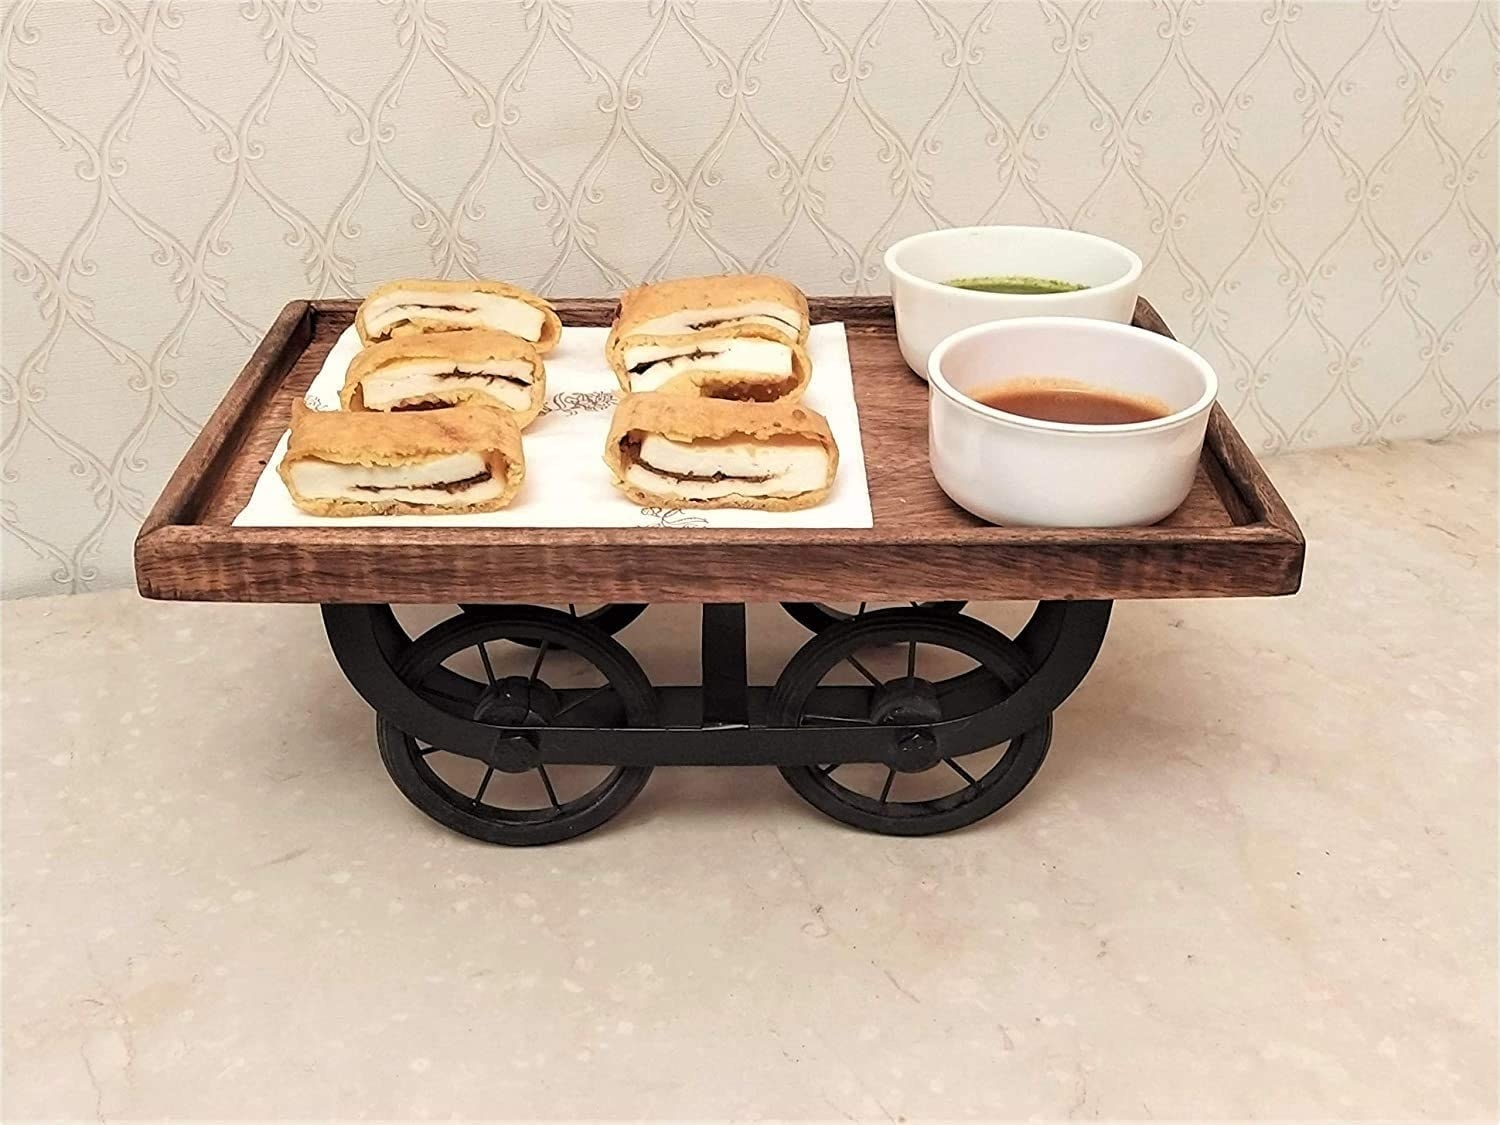 A serving tray with food items on it